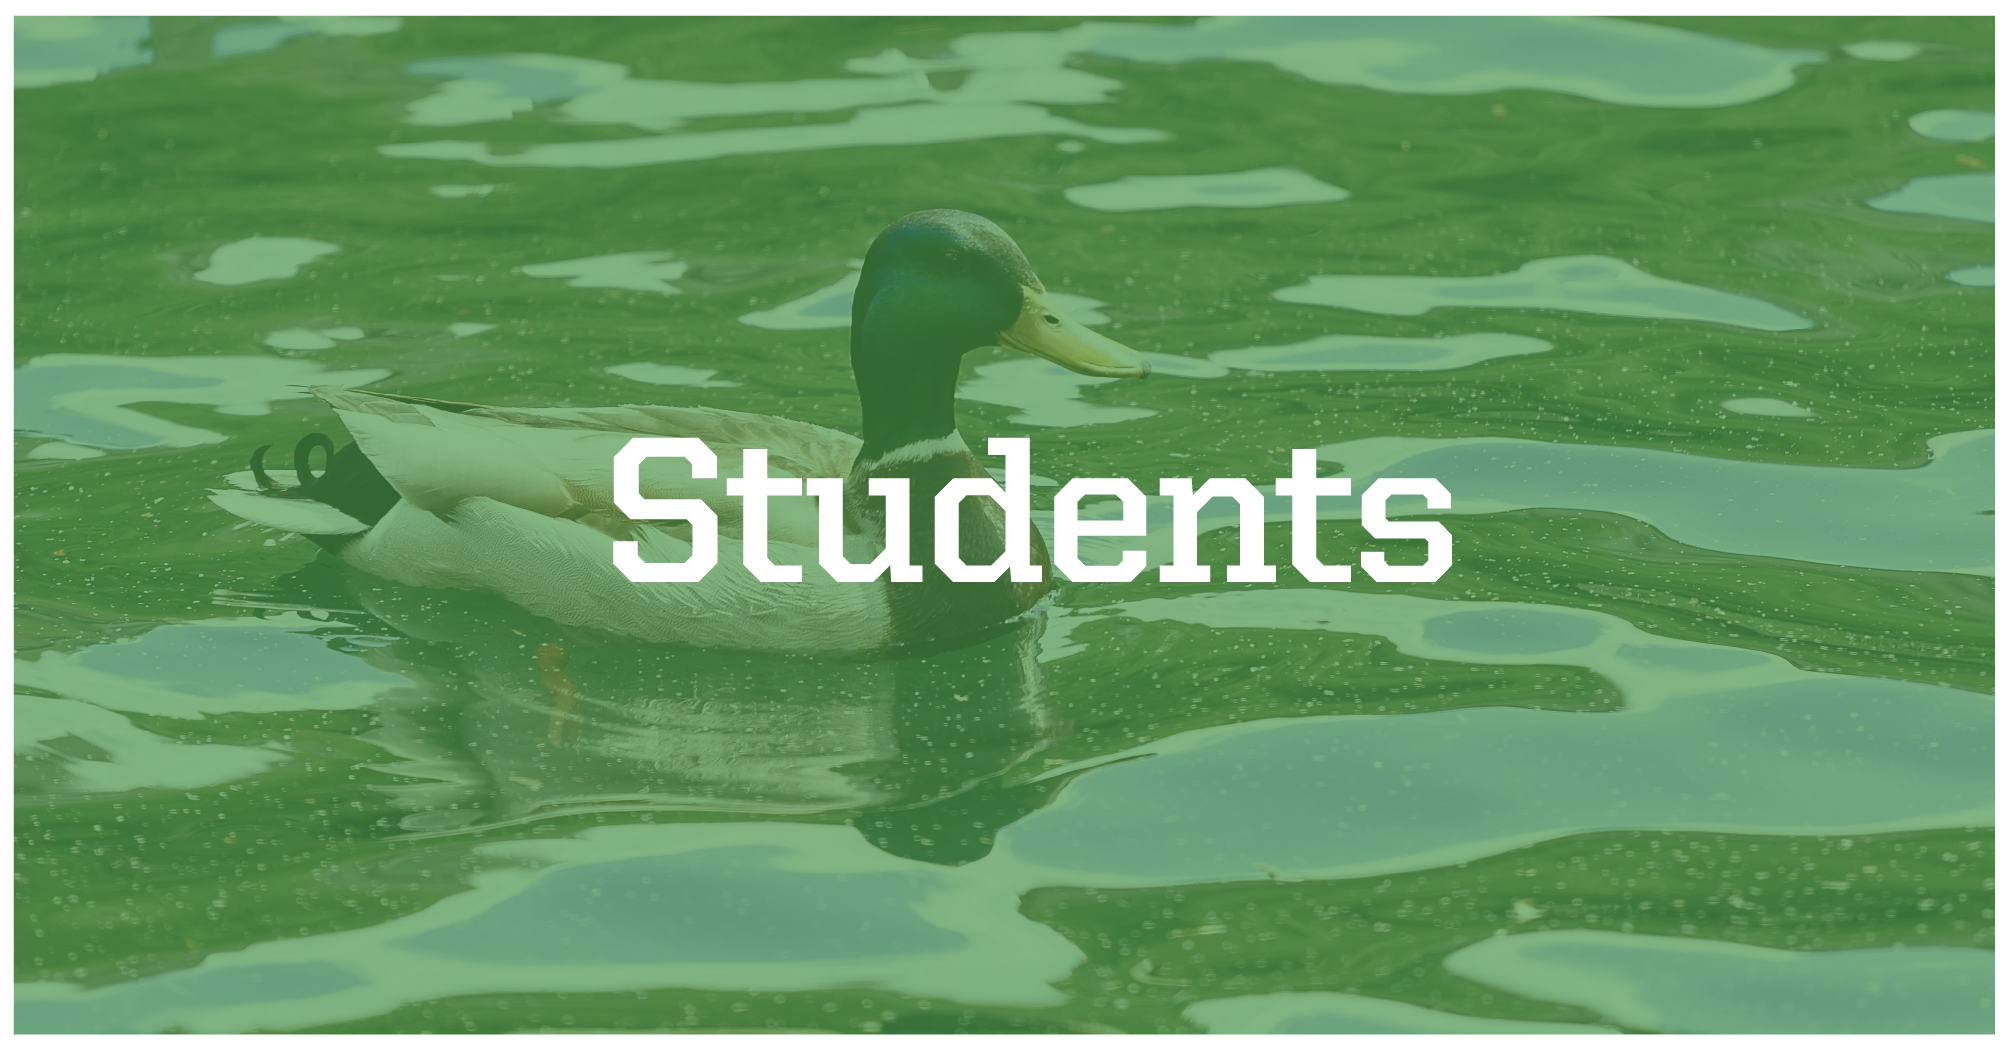 Background image is of duck in post; button